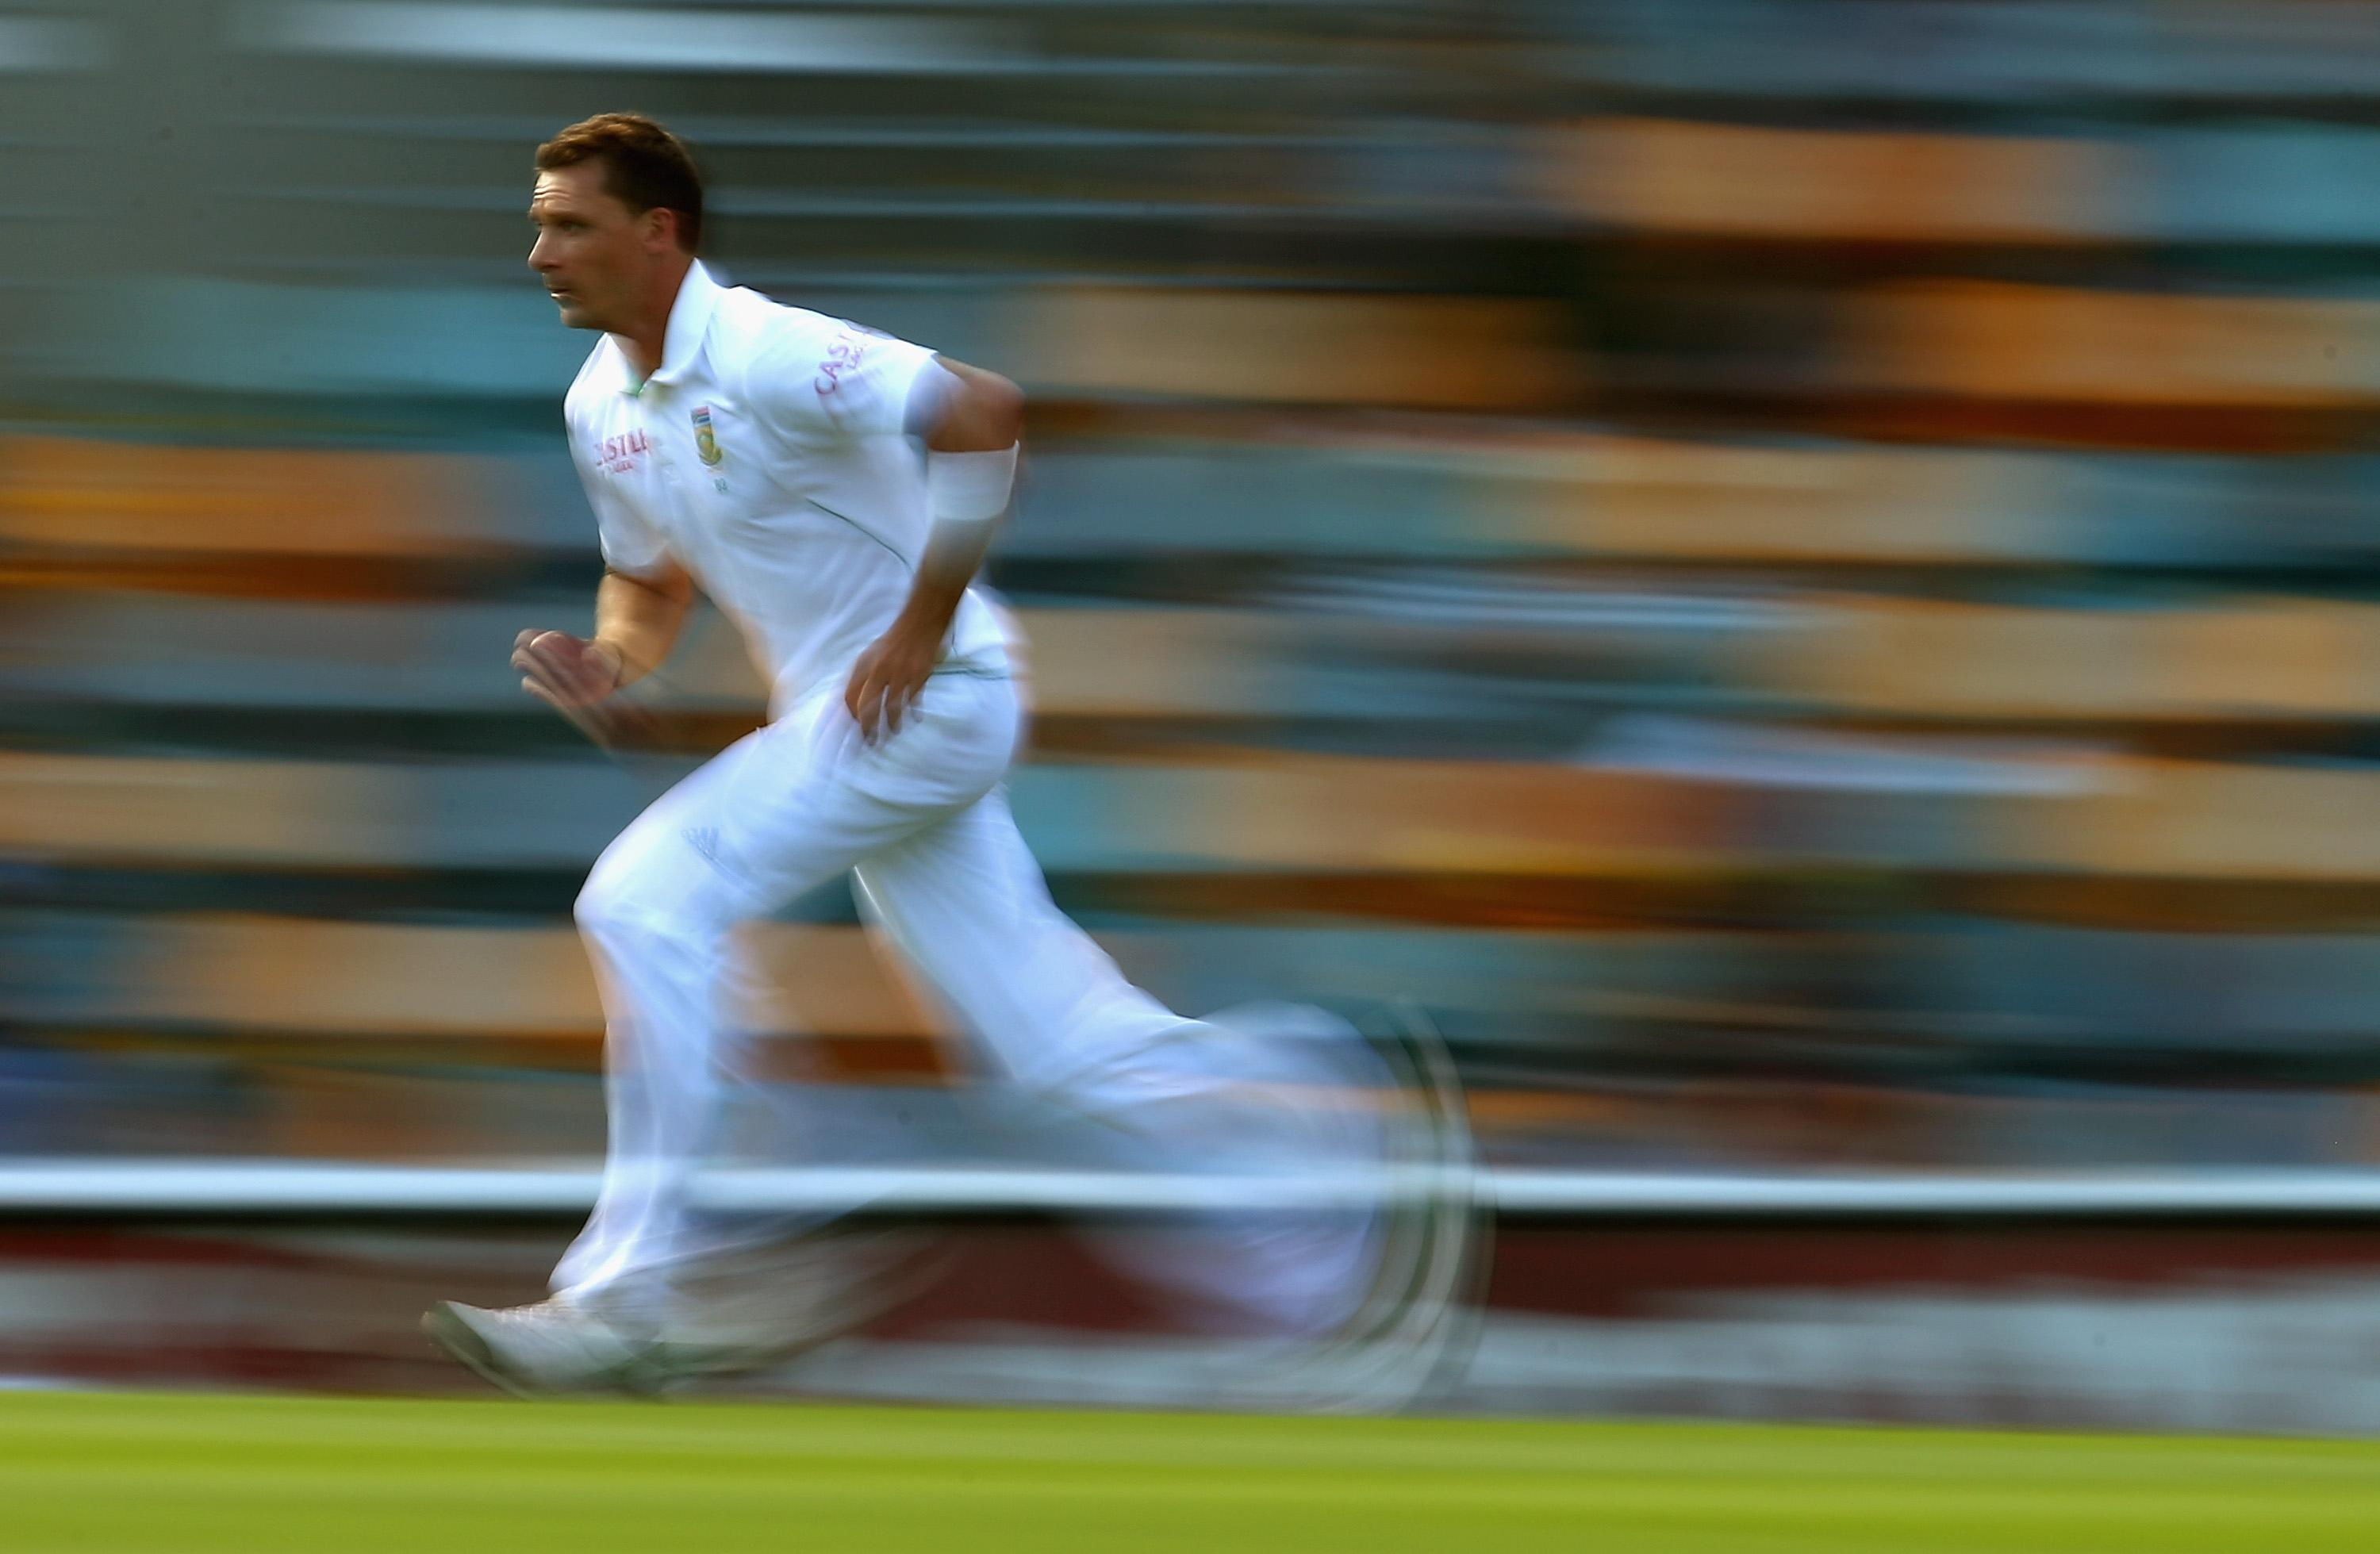 'Simply the best' - the world reacts to Dale Steyn's milestone